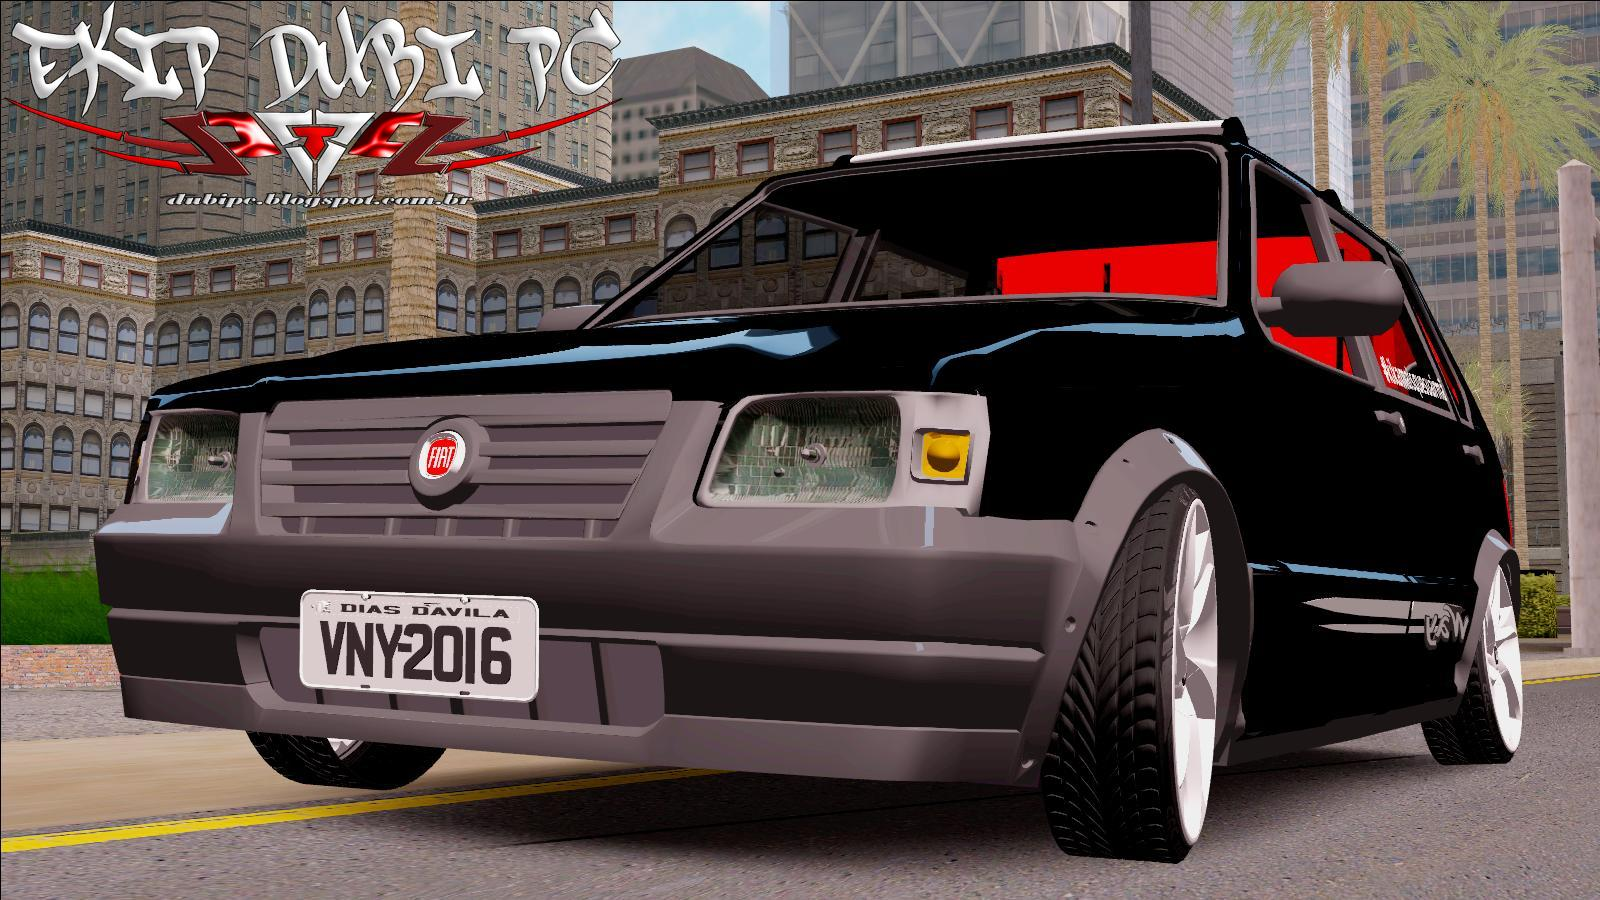 Fiat uno way fixa com som by vinny3d ekip dubi pc fiat uno way fixa com som by vinny3d altavistaventures Image collections